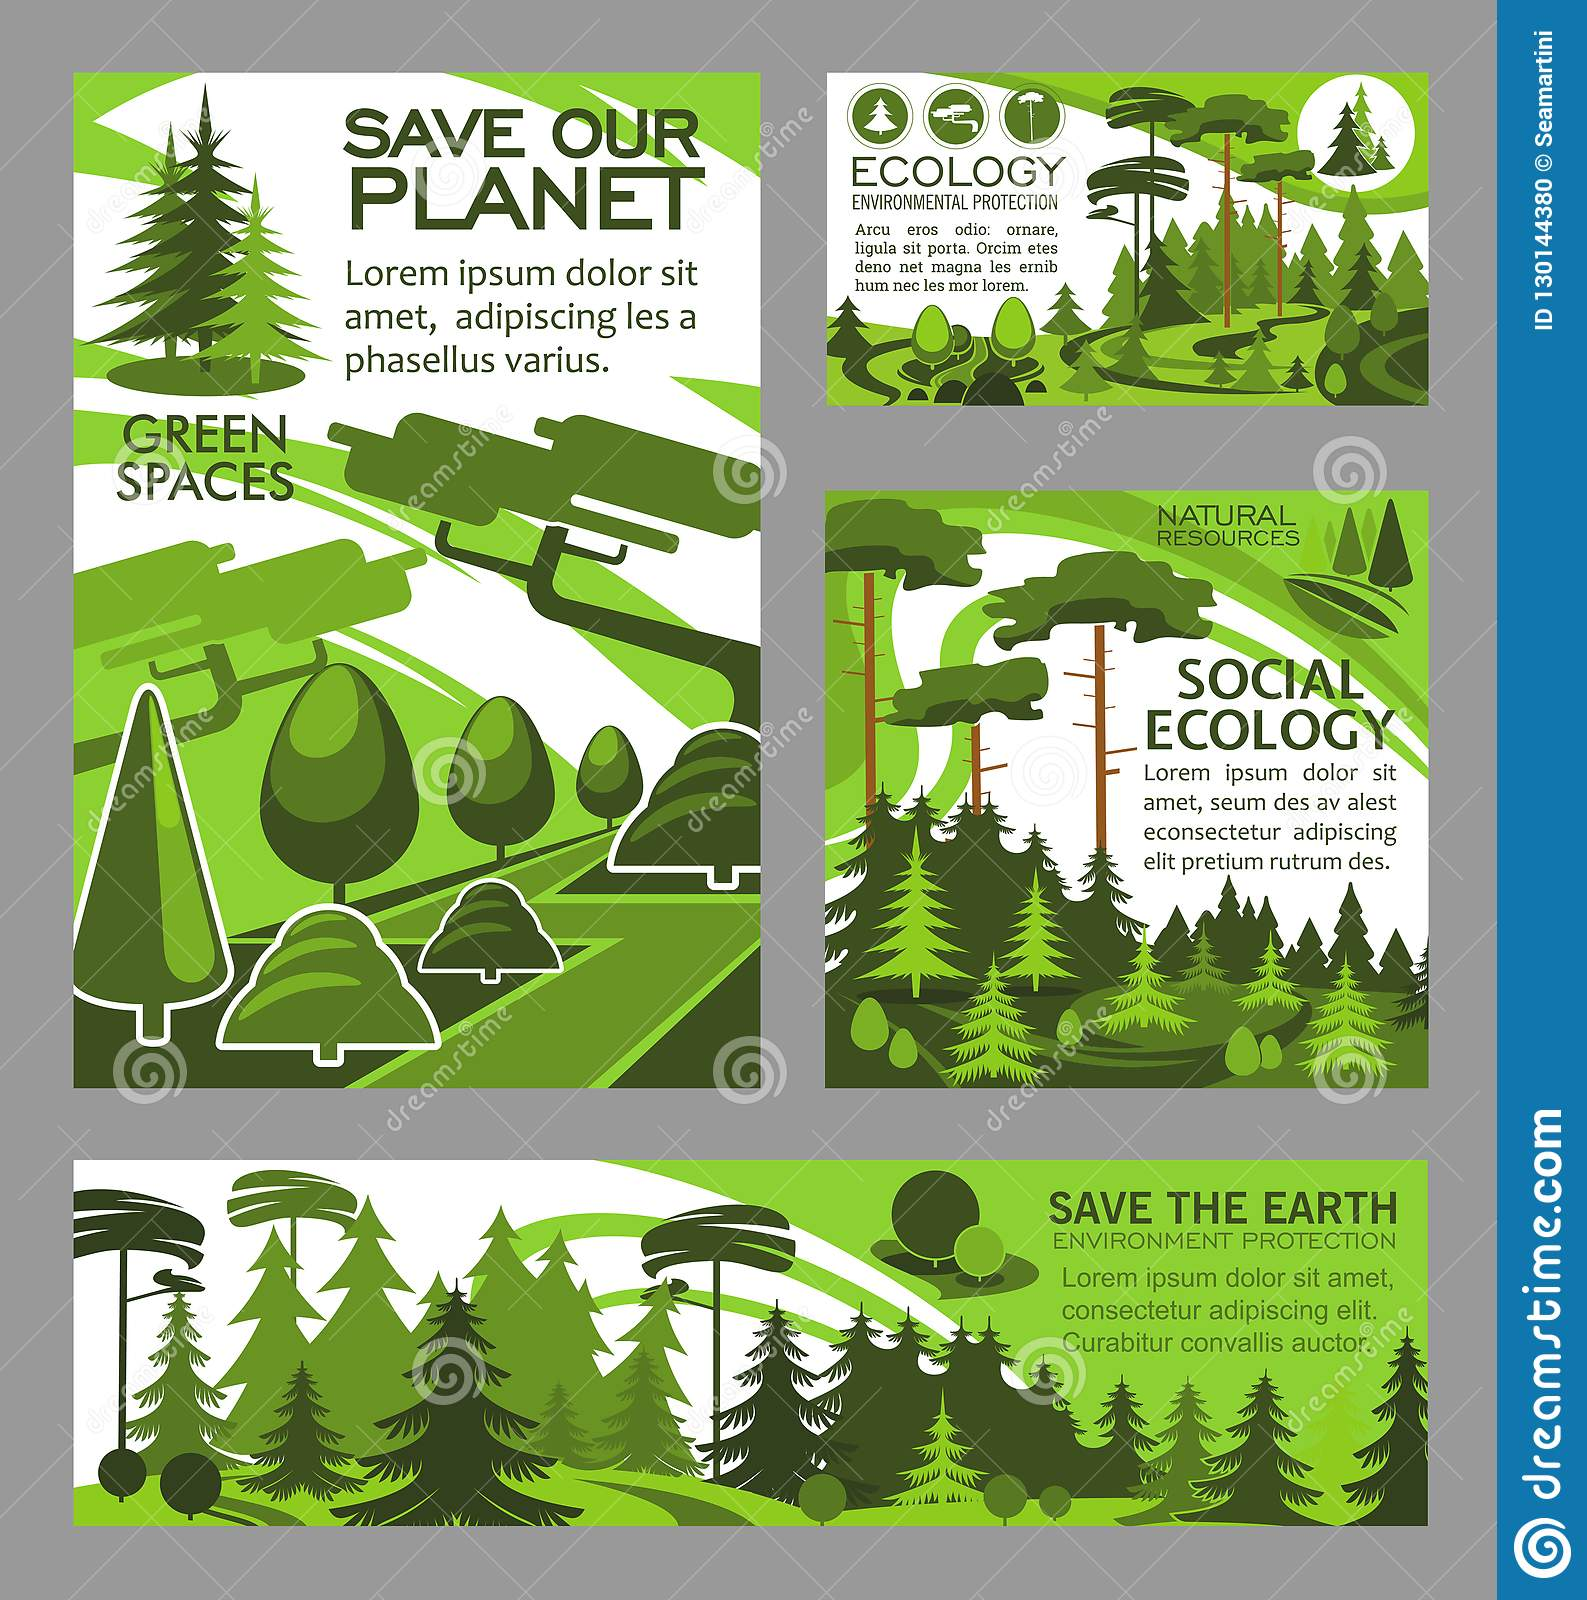 Save Planet Ecology Green Project Vector Posters Stock